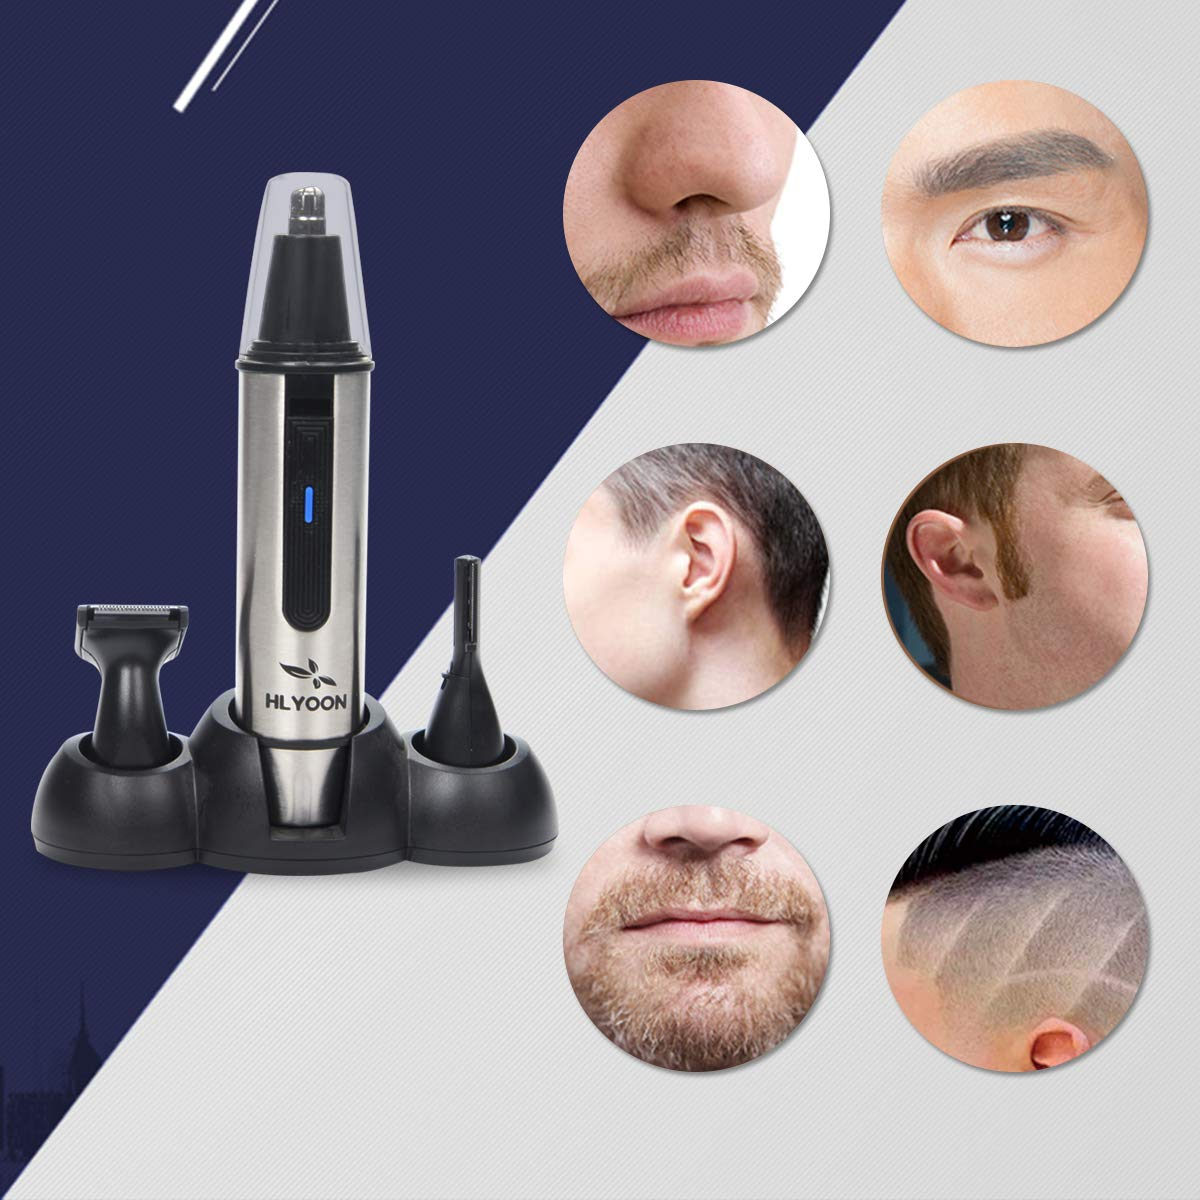 HLYOON 3 in 1 Nose & Ear Hair Trimmer with LED Light, Wet/Dry, Waterproof Stainless Steel, Beard and Eyebrow Grooming Set, Battery-Operated